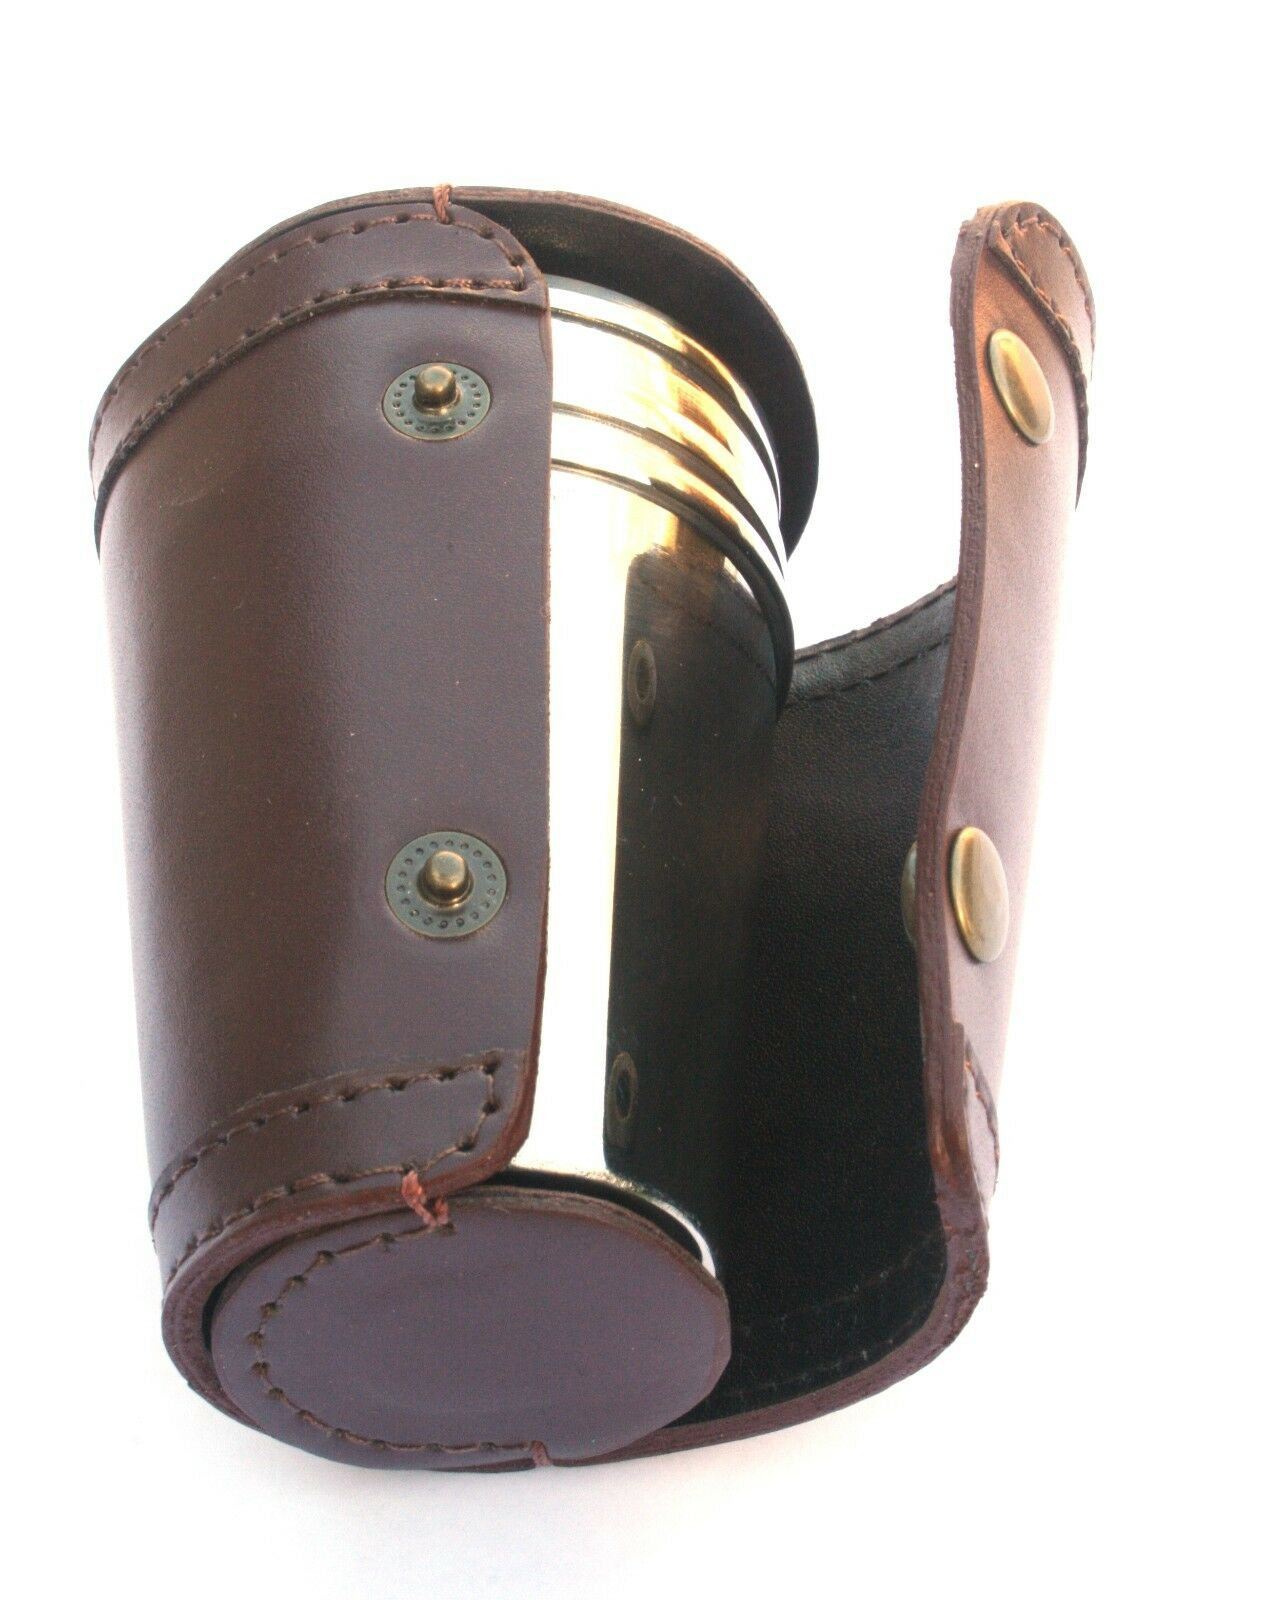 Claddagh Ring 4 Shot Stacking Stirrup Shot 4 Cups in Leather Case Gift d21d68